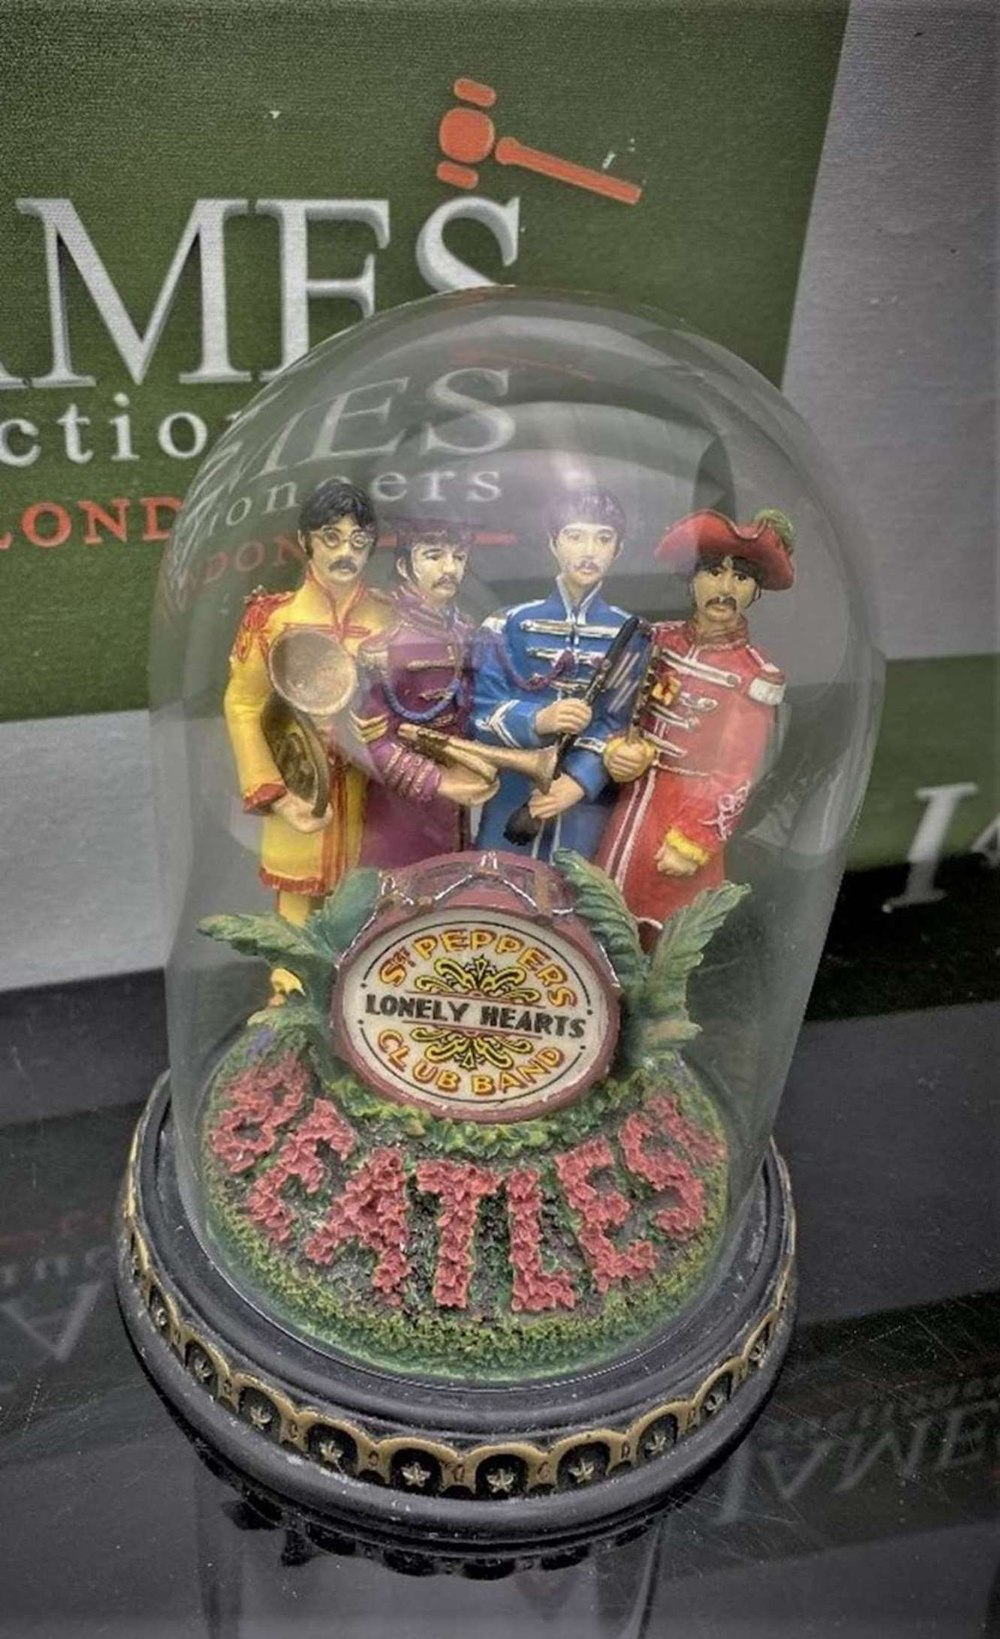 The Beatles 'Sgt Pepper's - Franklin Mint ltd Edition -Lonely Hearts Club Band Figural & Glass Dome - Image 3 of 5